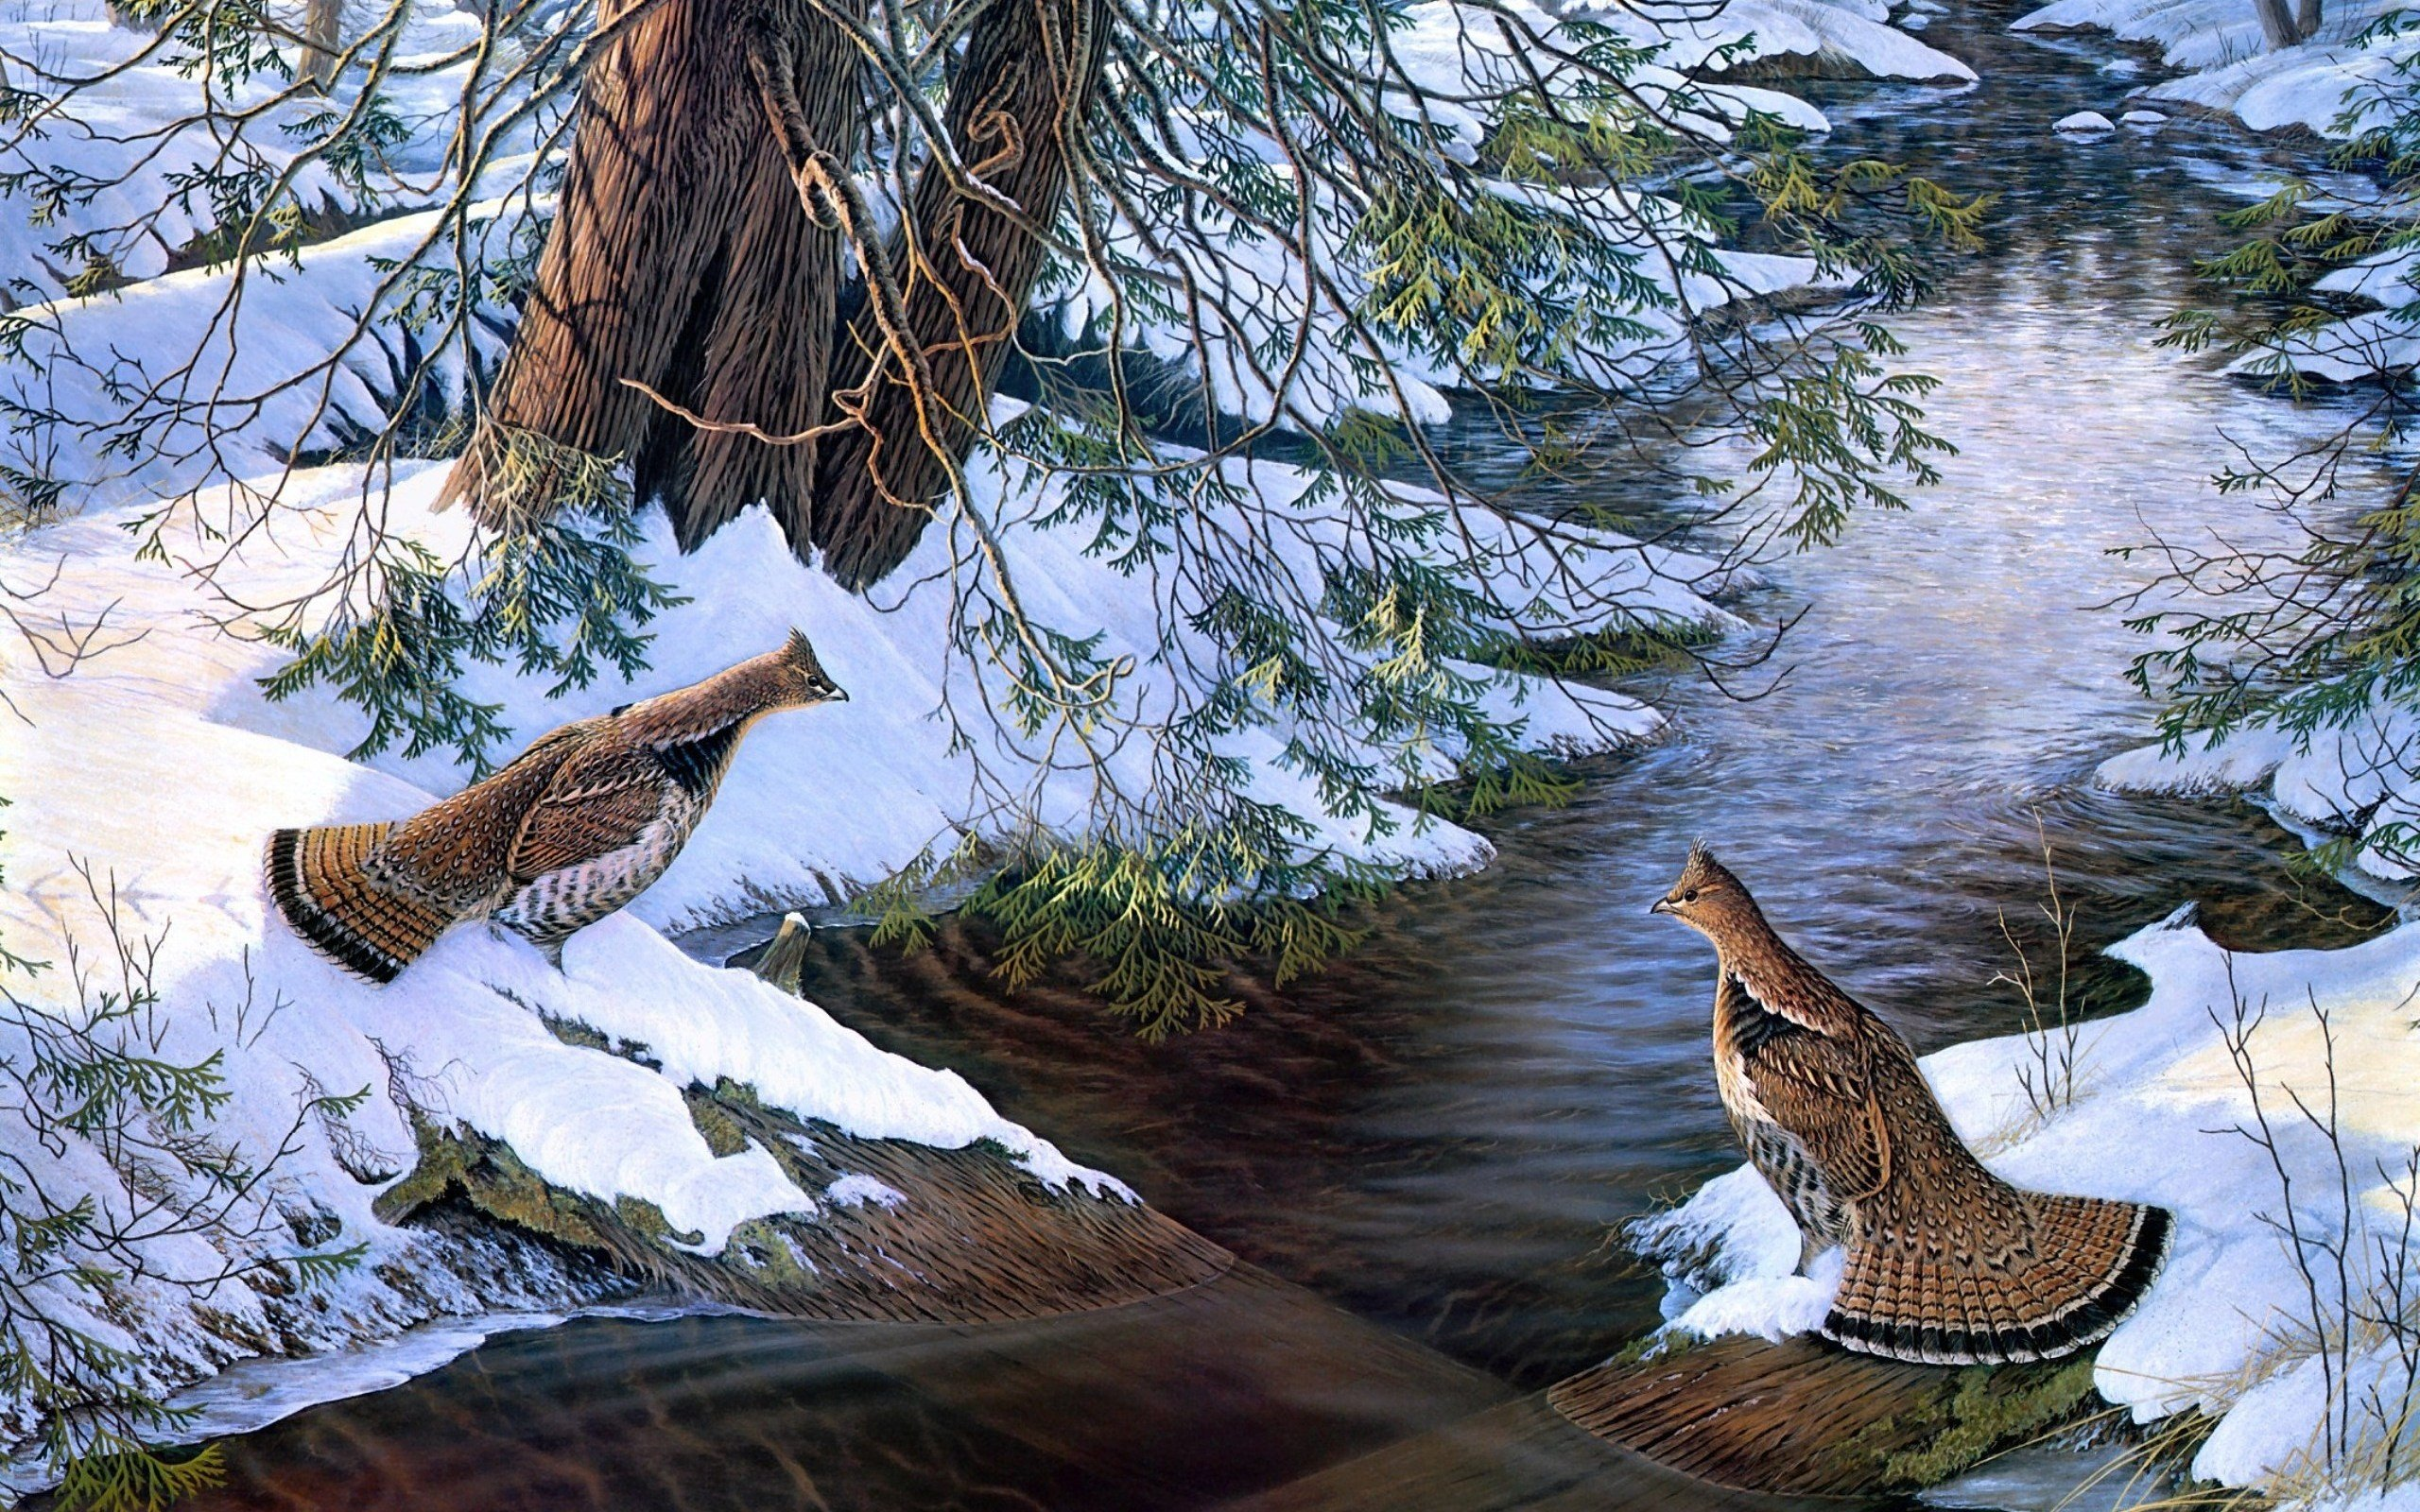 Paintings Snow Birds Creek Grouse Wallpaper 2560x1600